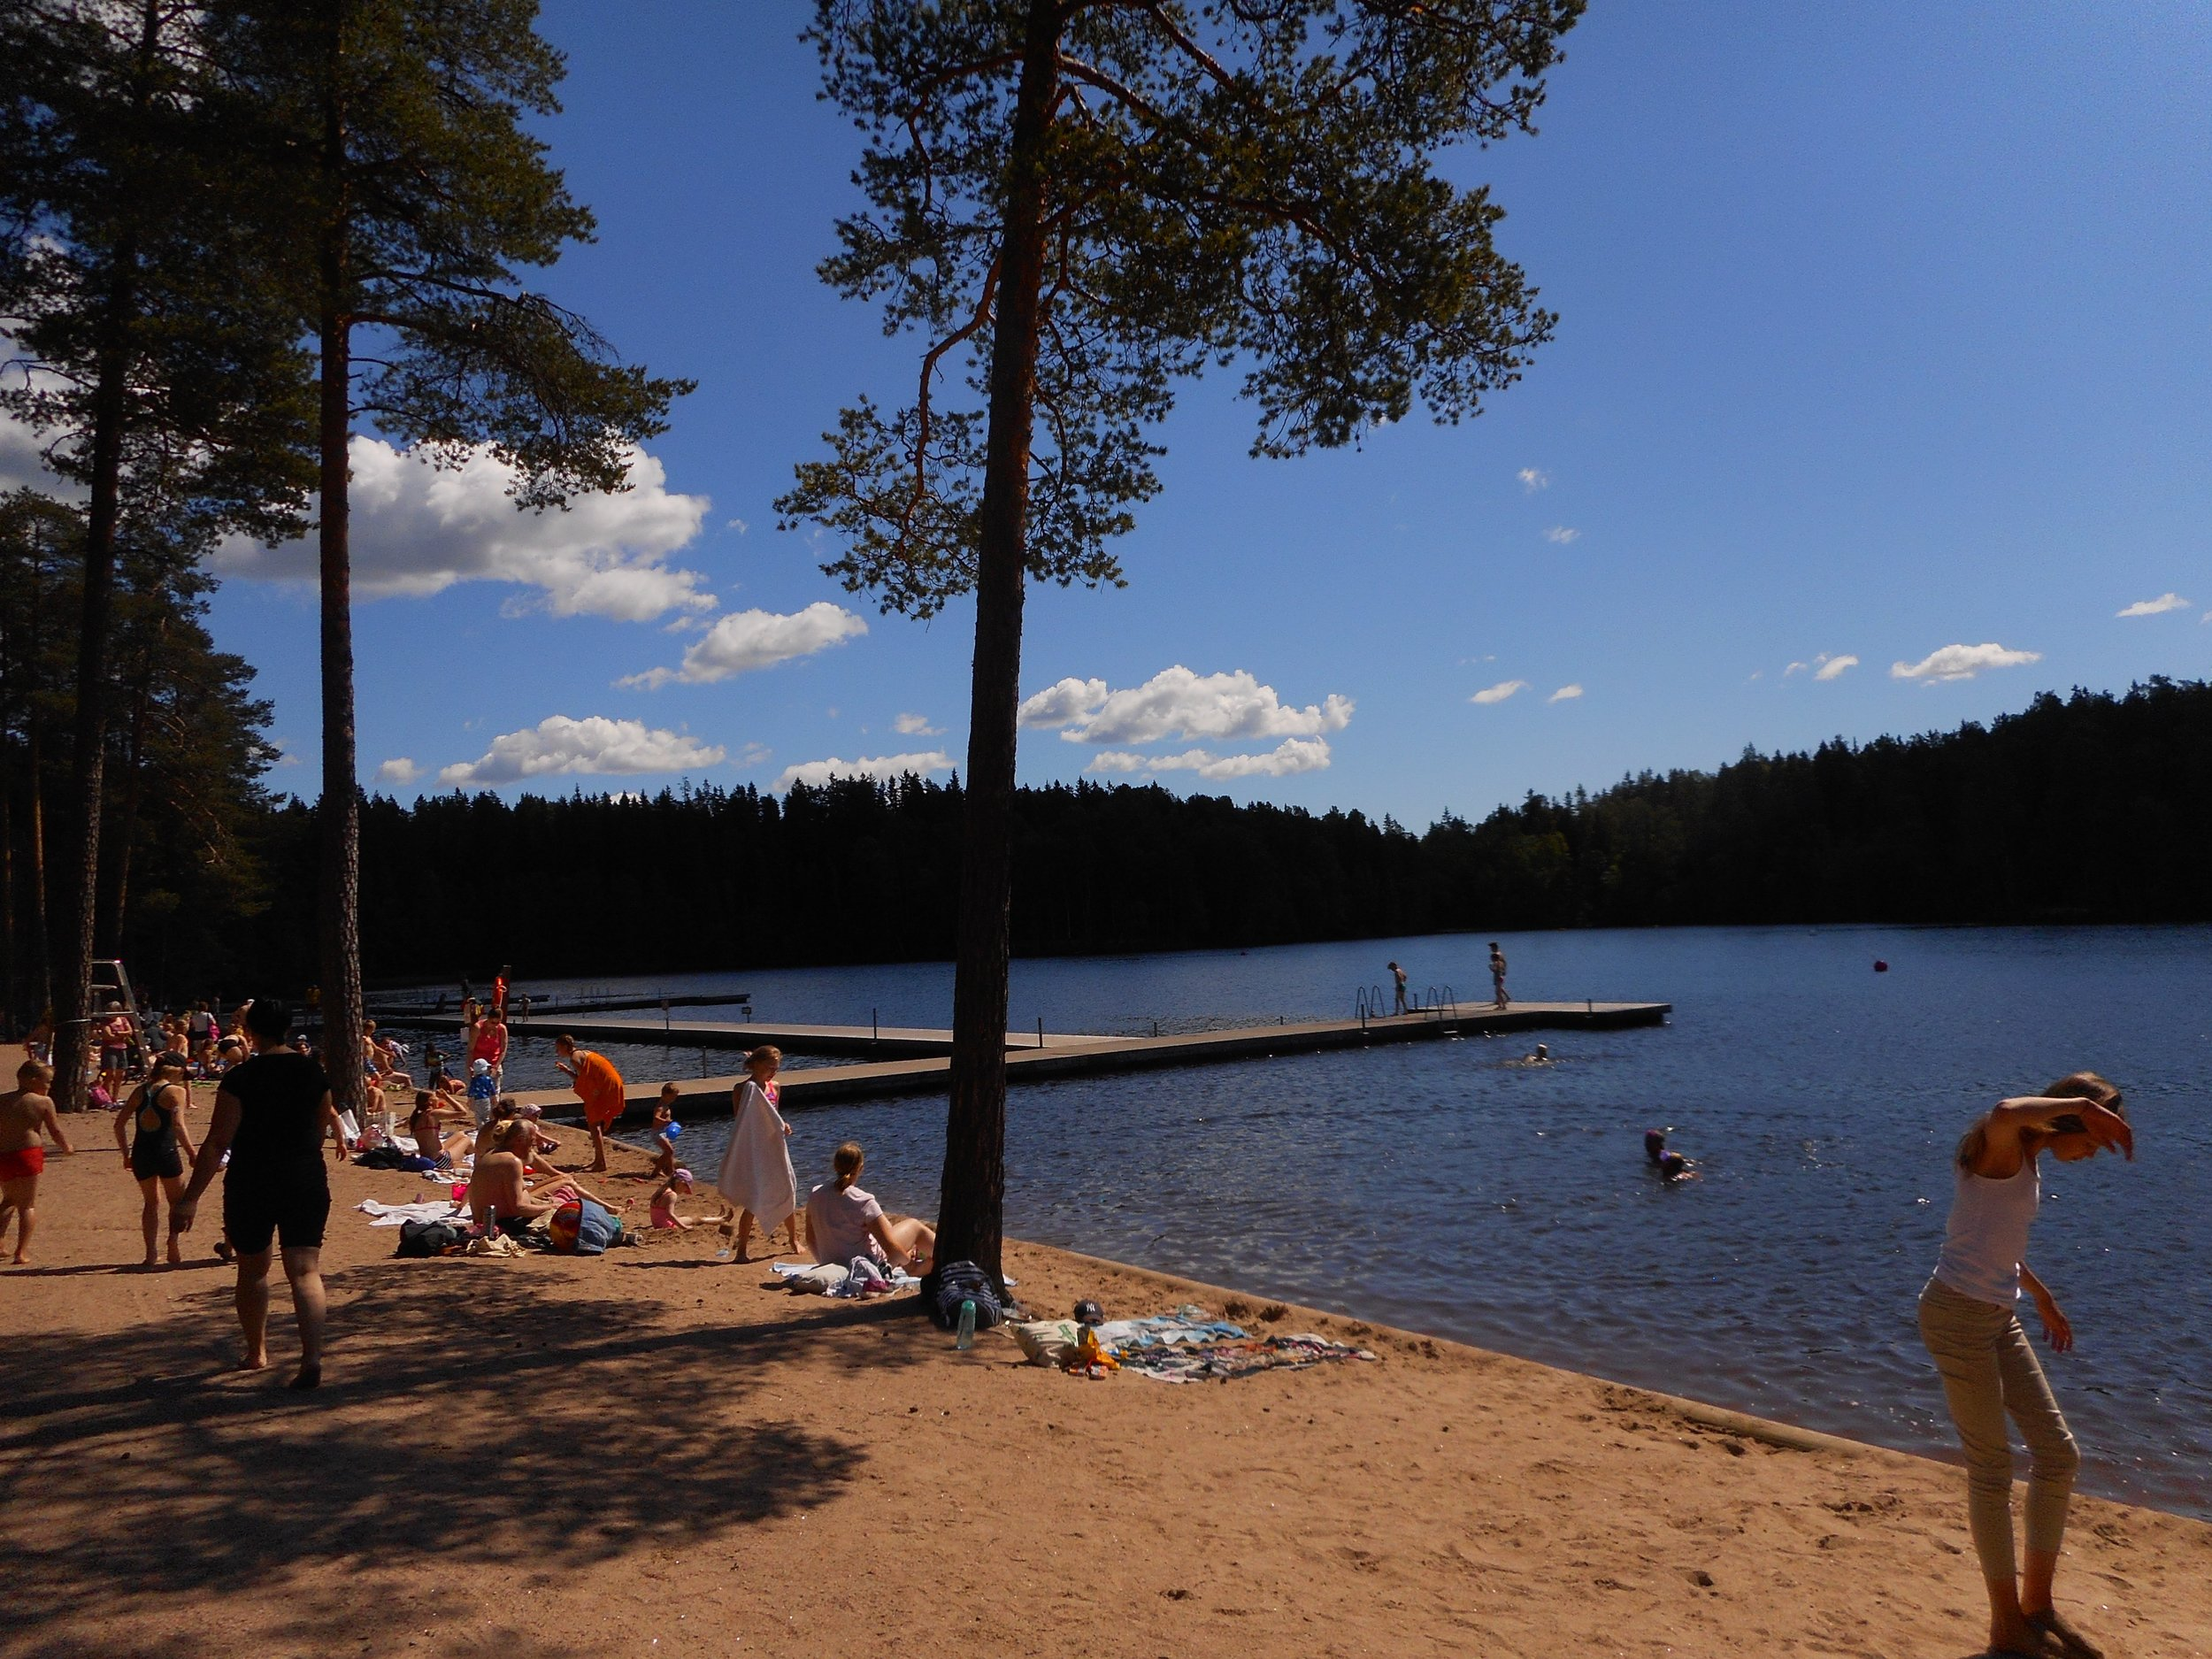 Kuusijärvi outdoor recreational center  is located just next to  Sipoonkorpi National Park .